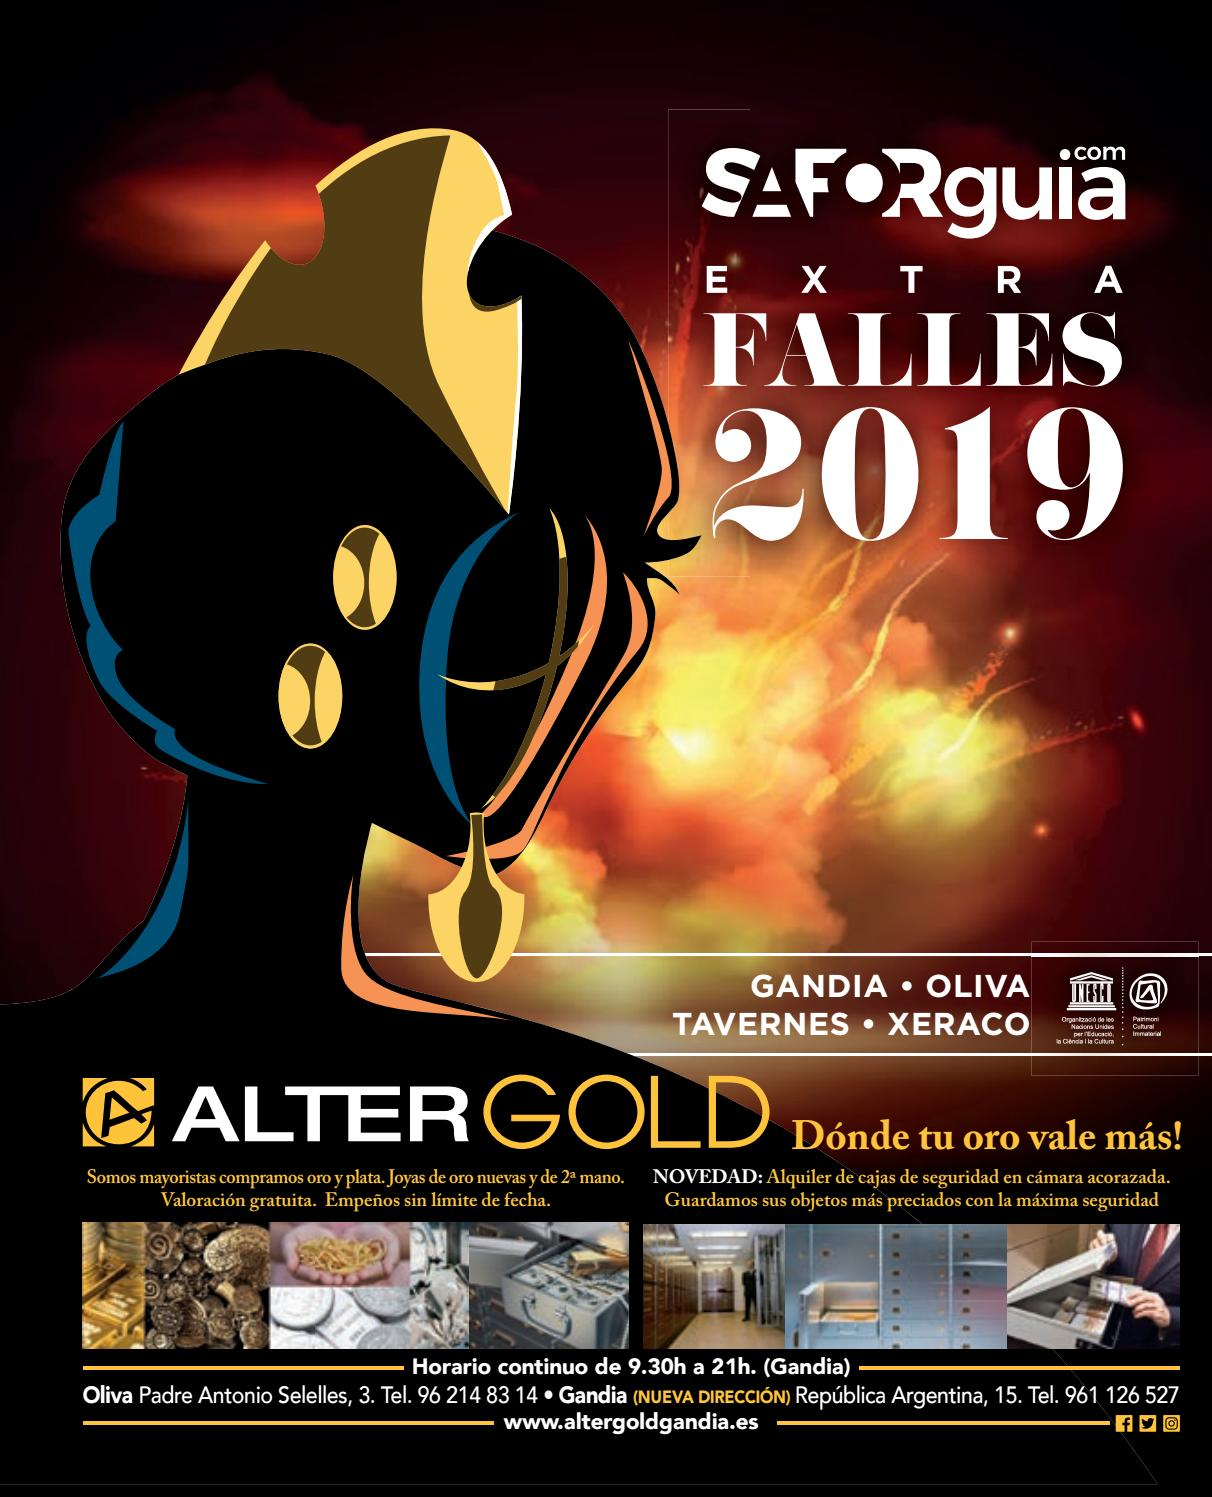 3608fde8273 Extra Falles Safor Guia 2019 by Ramon Mut Portoles - issuu